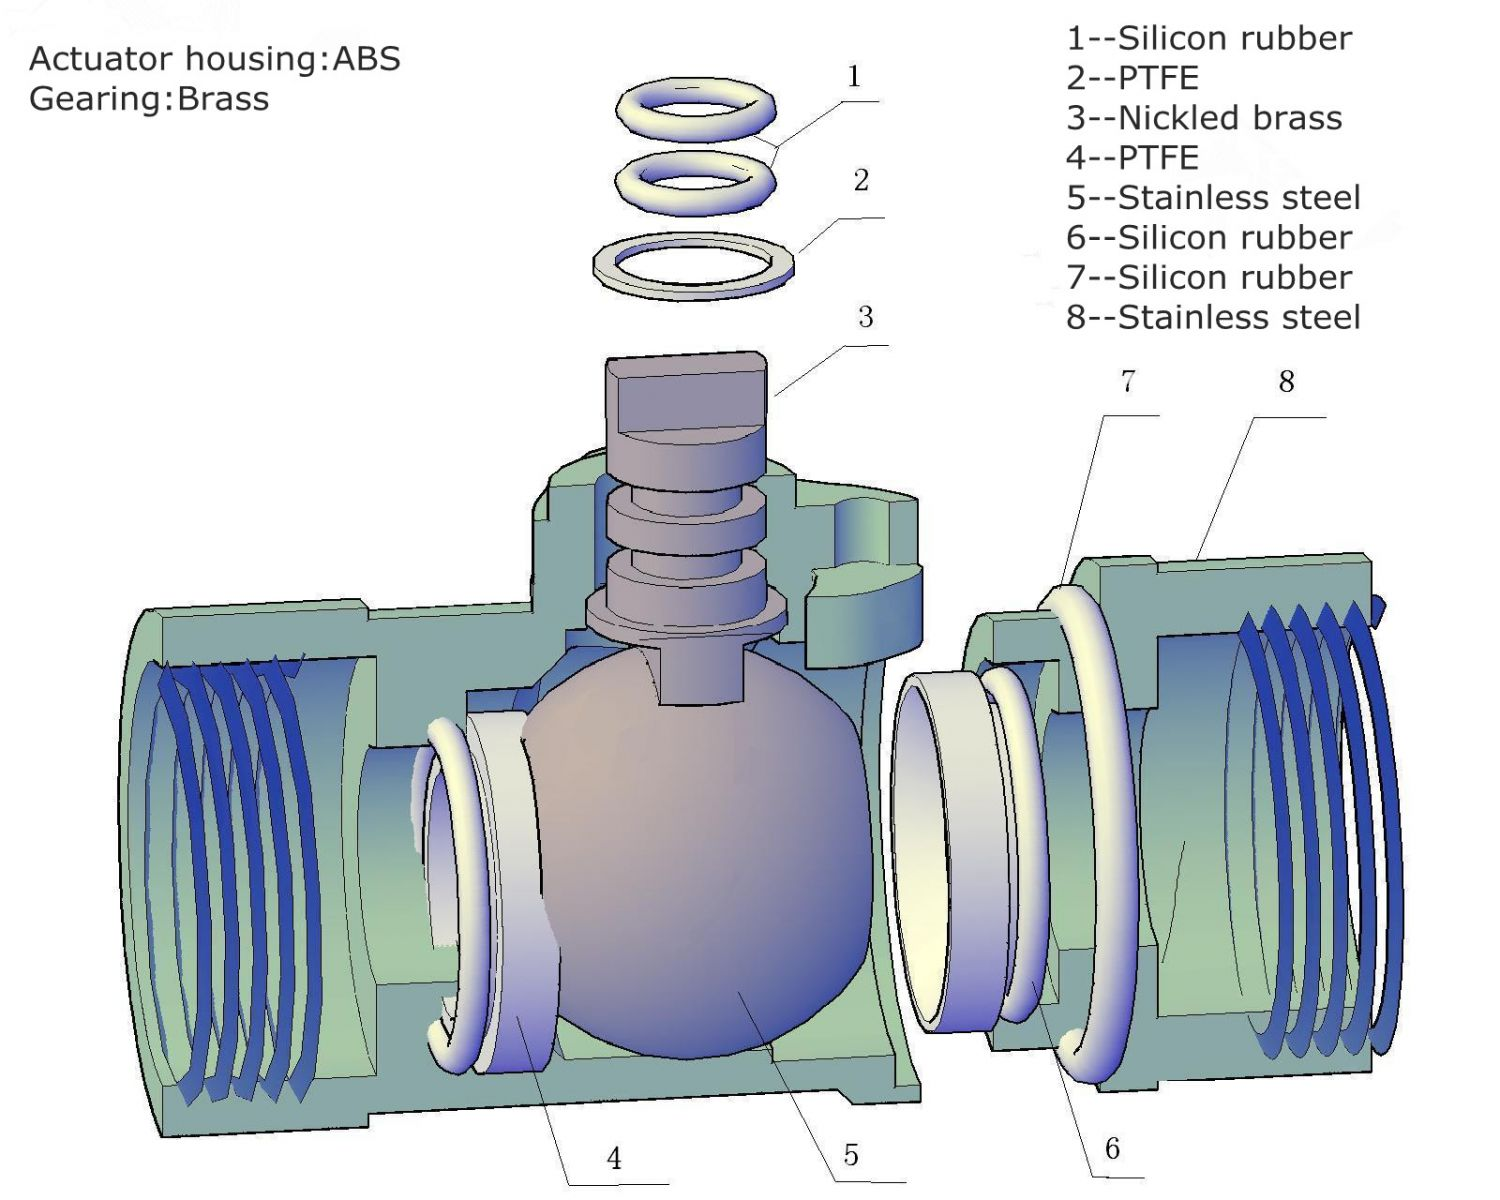 danfoss 3 way valve wiring diagram switched outlet ball